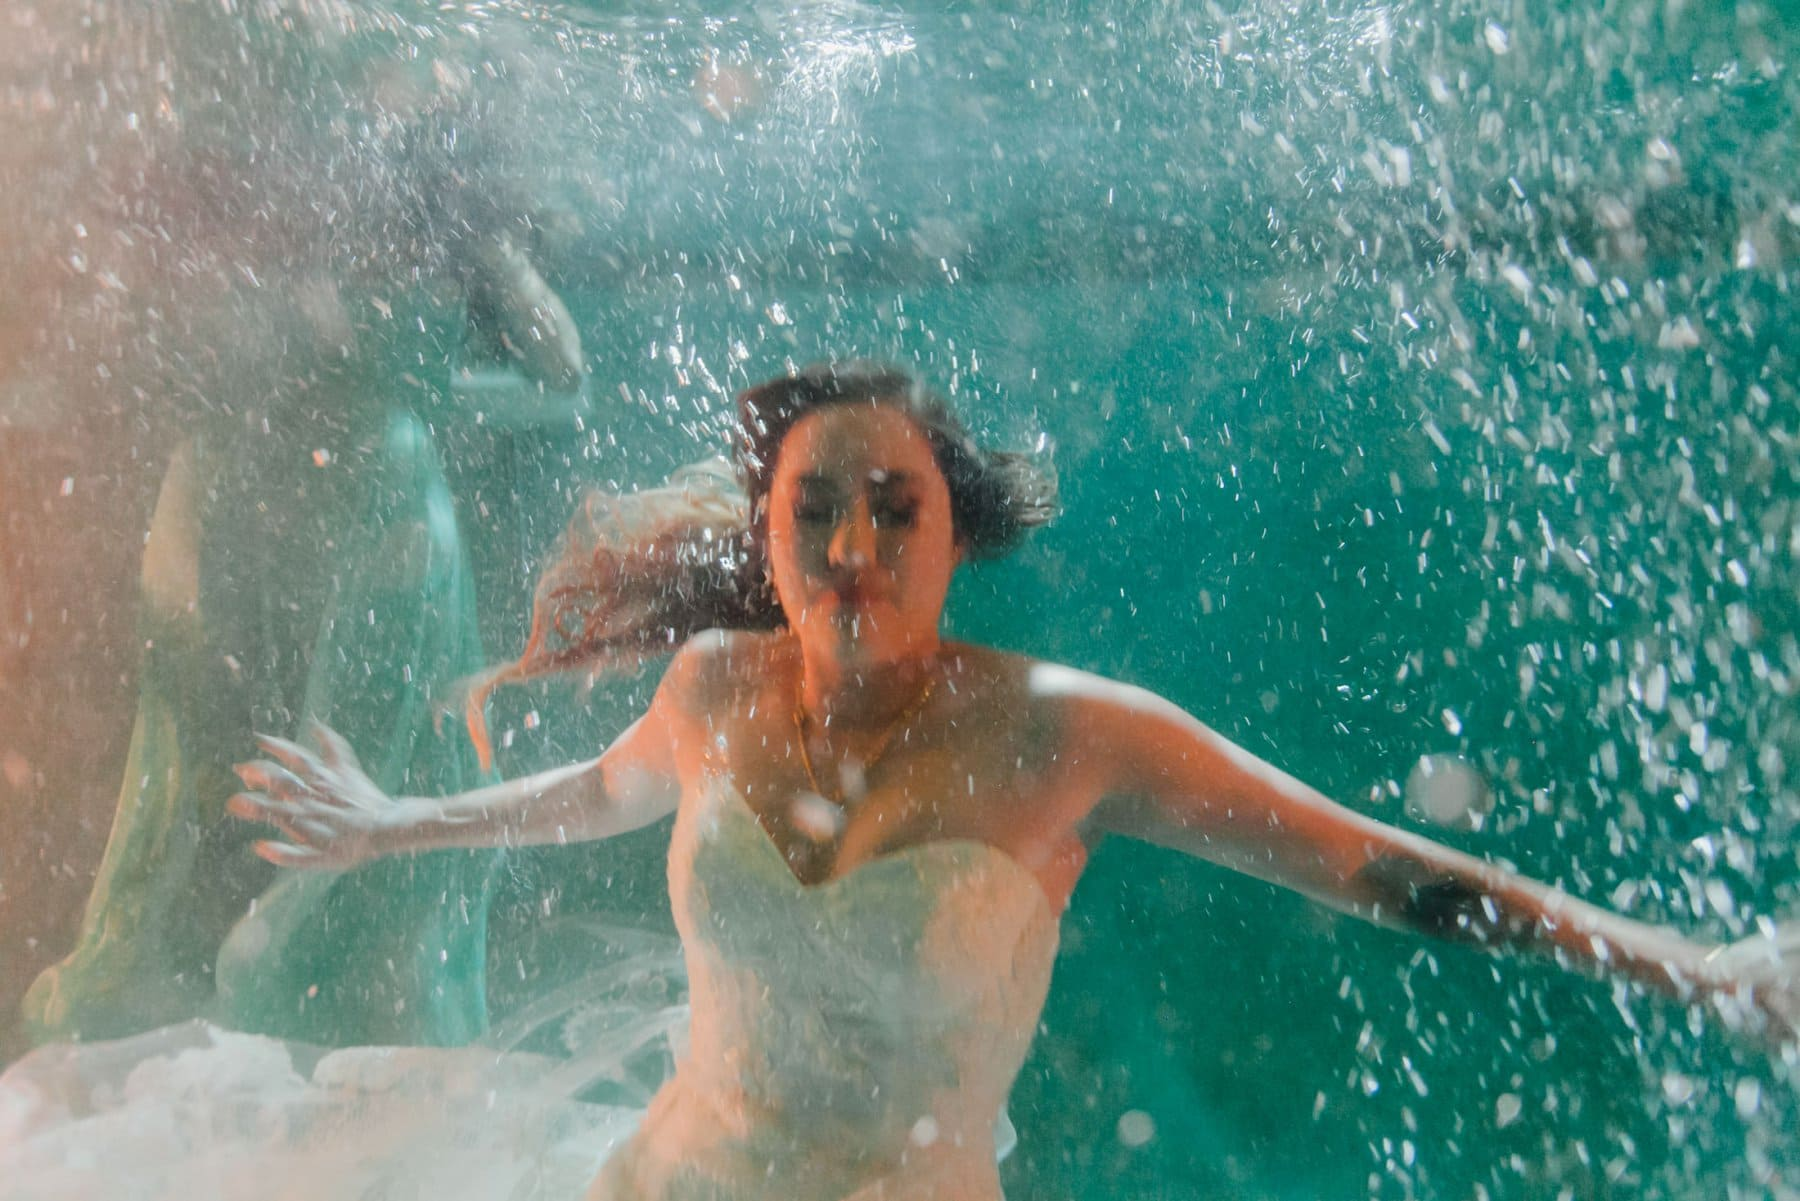 bride jumping into pool at wedding reception underwater